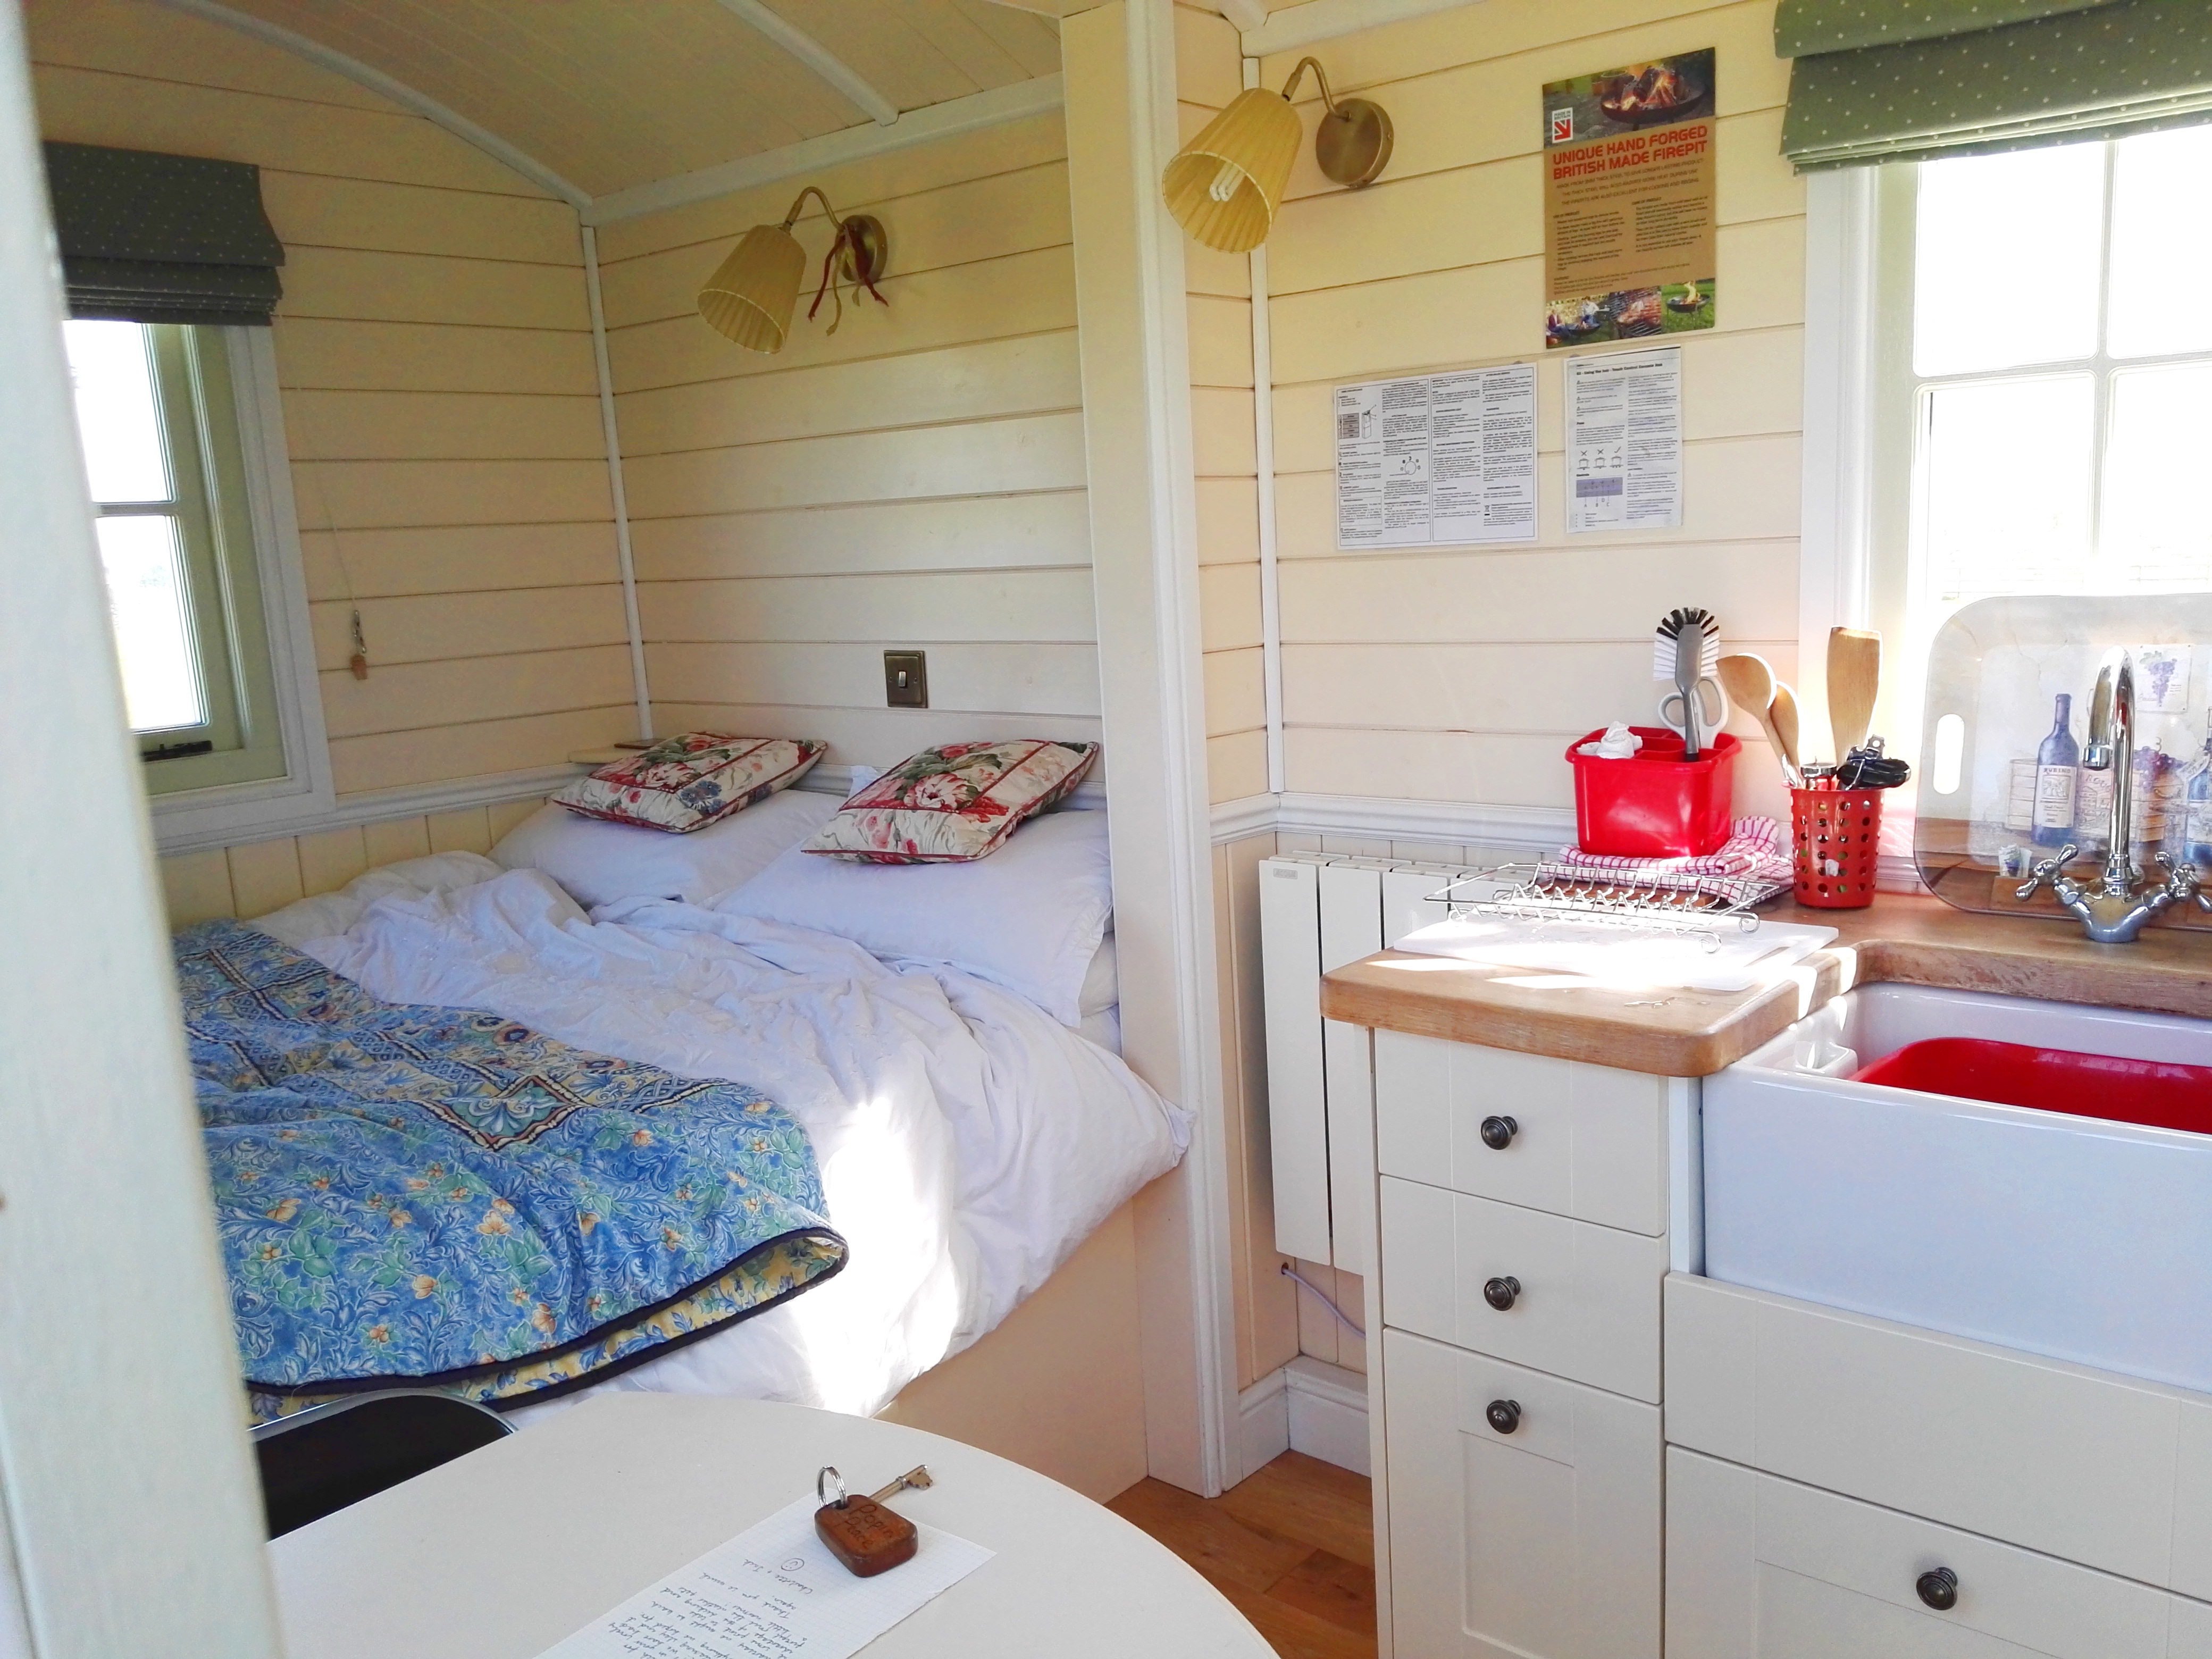 The bedroom of the hut